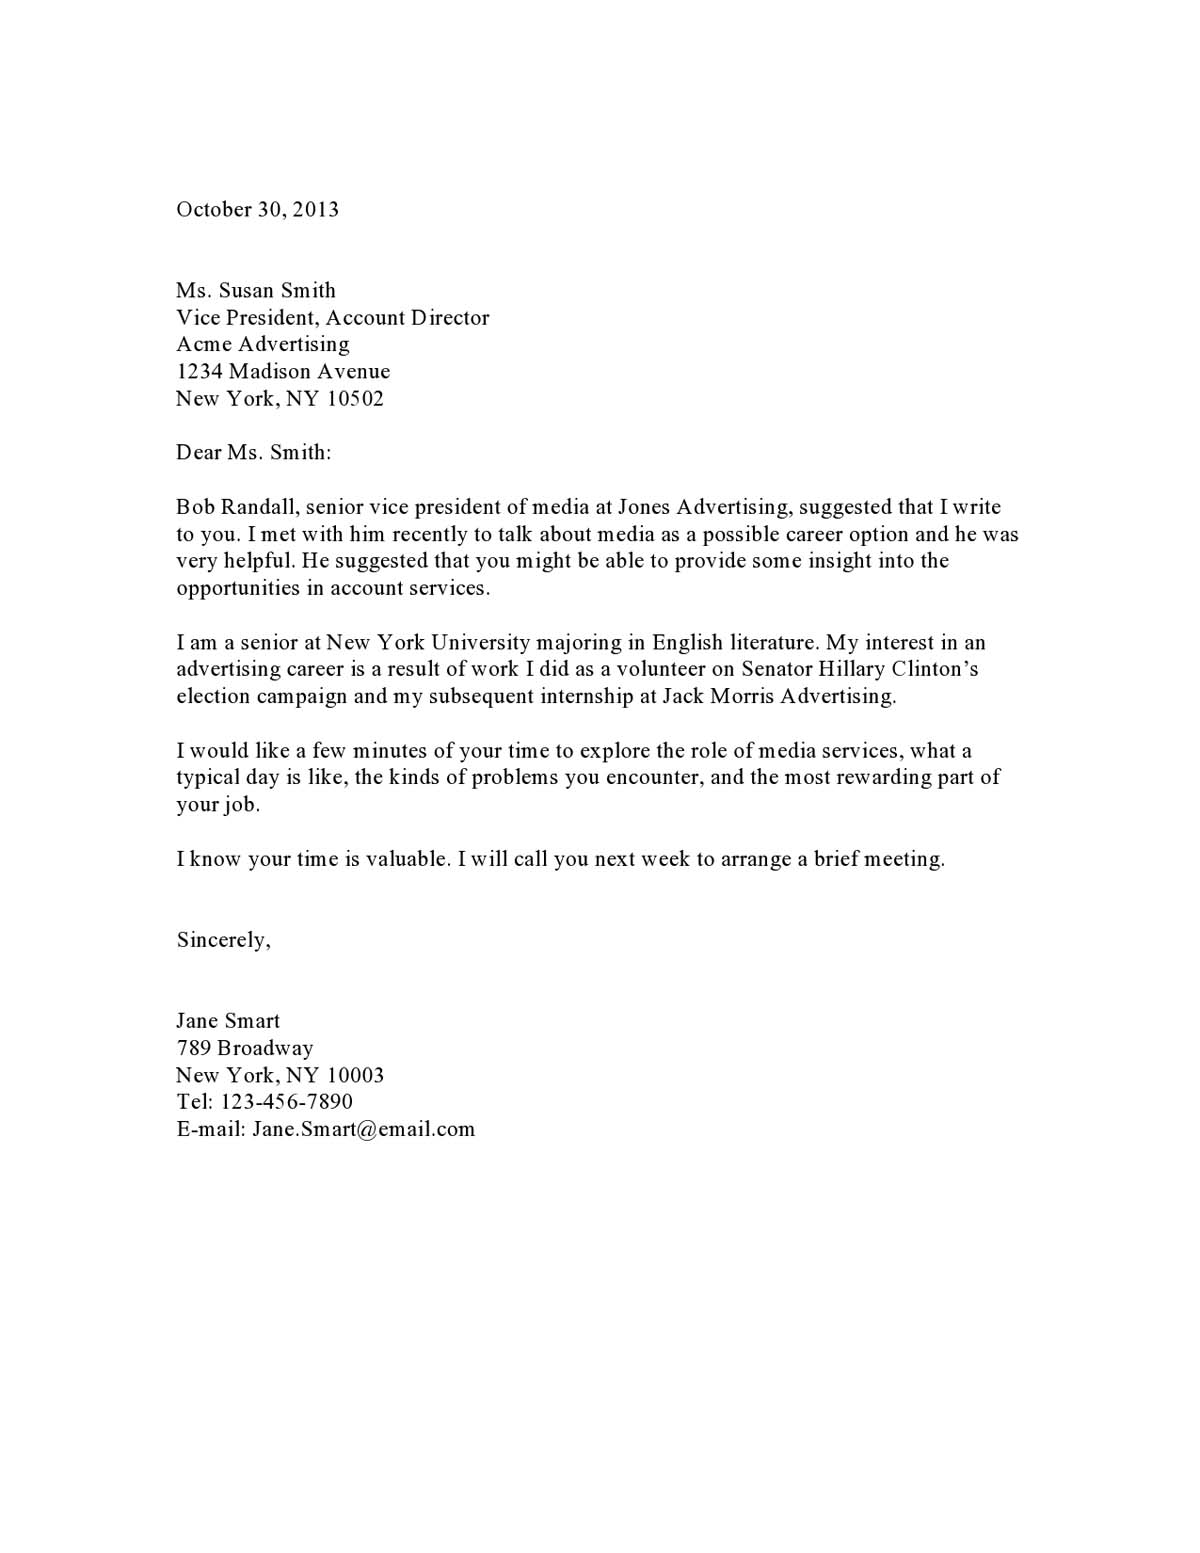 how to make a cover letter for jobs - sample cover letter for applying a job